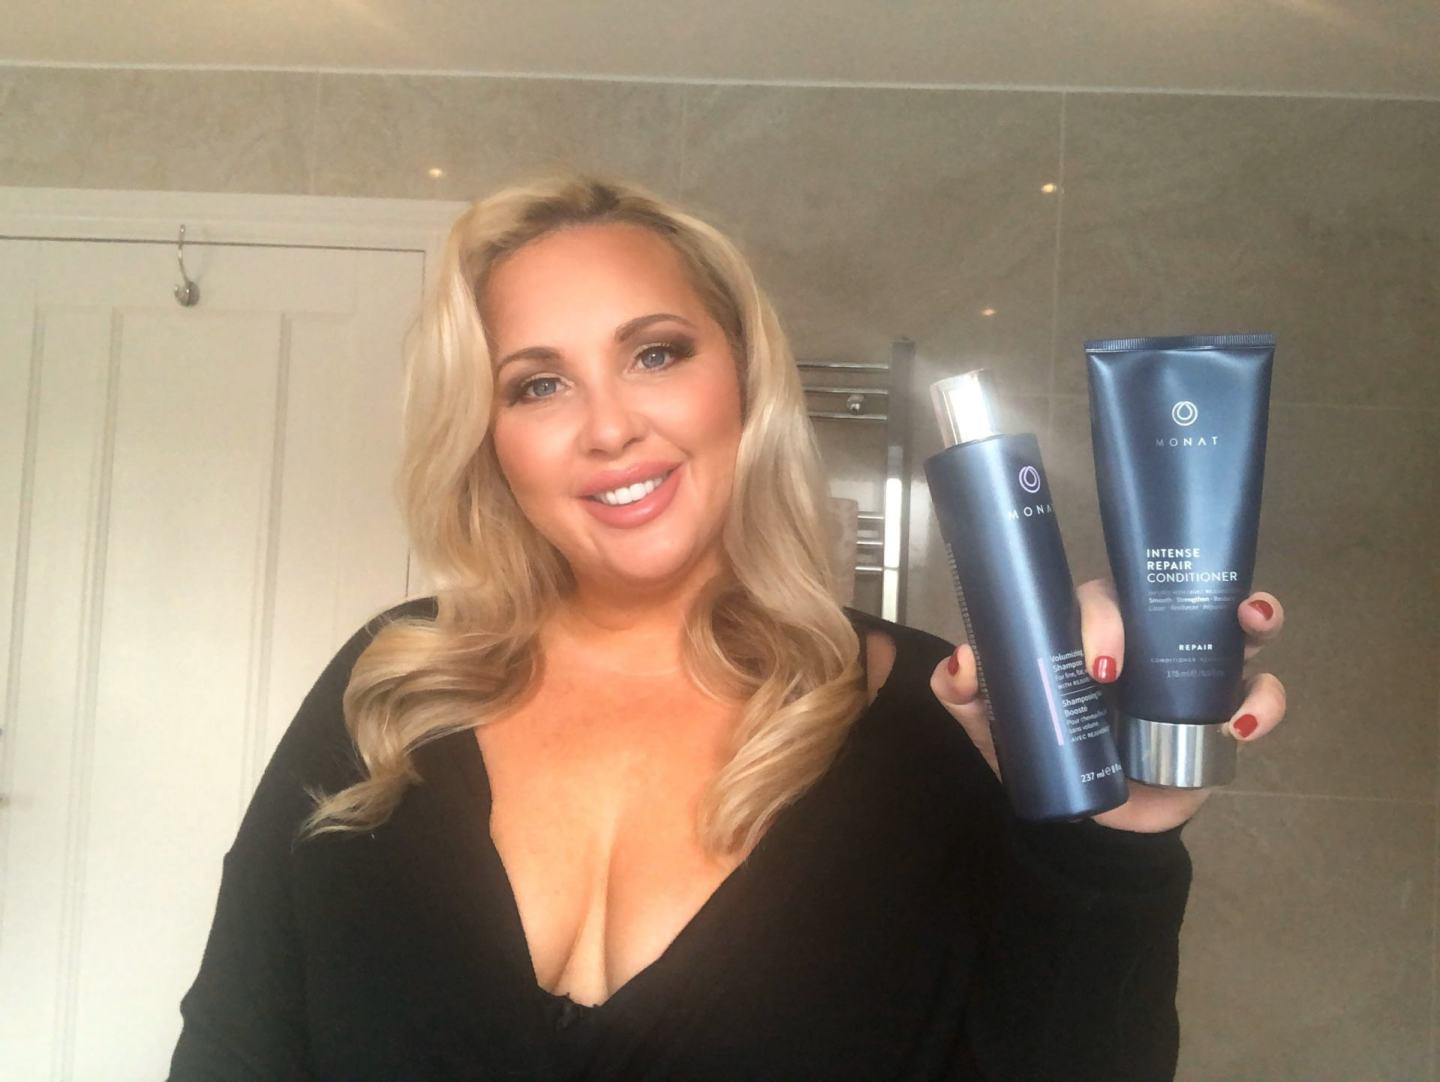 No Toxins Haircare - Review.